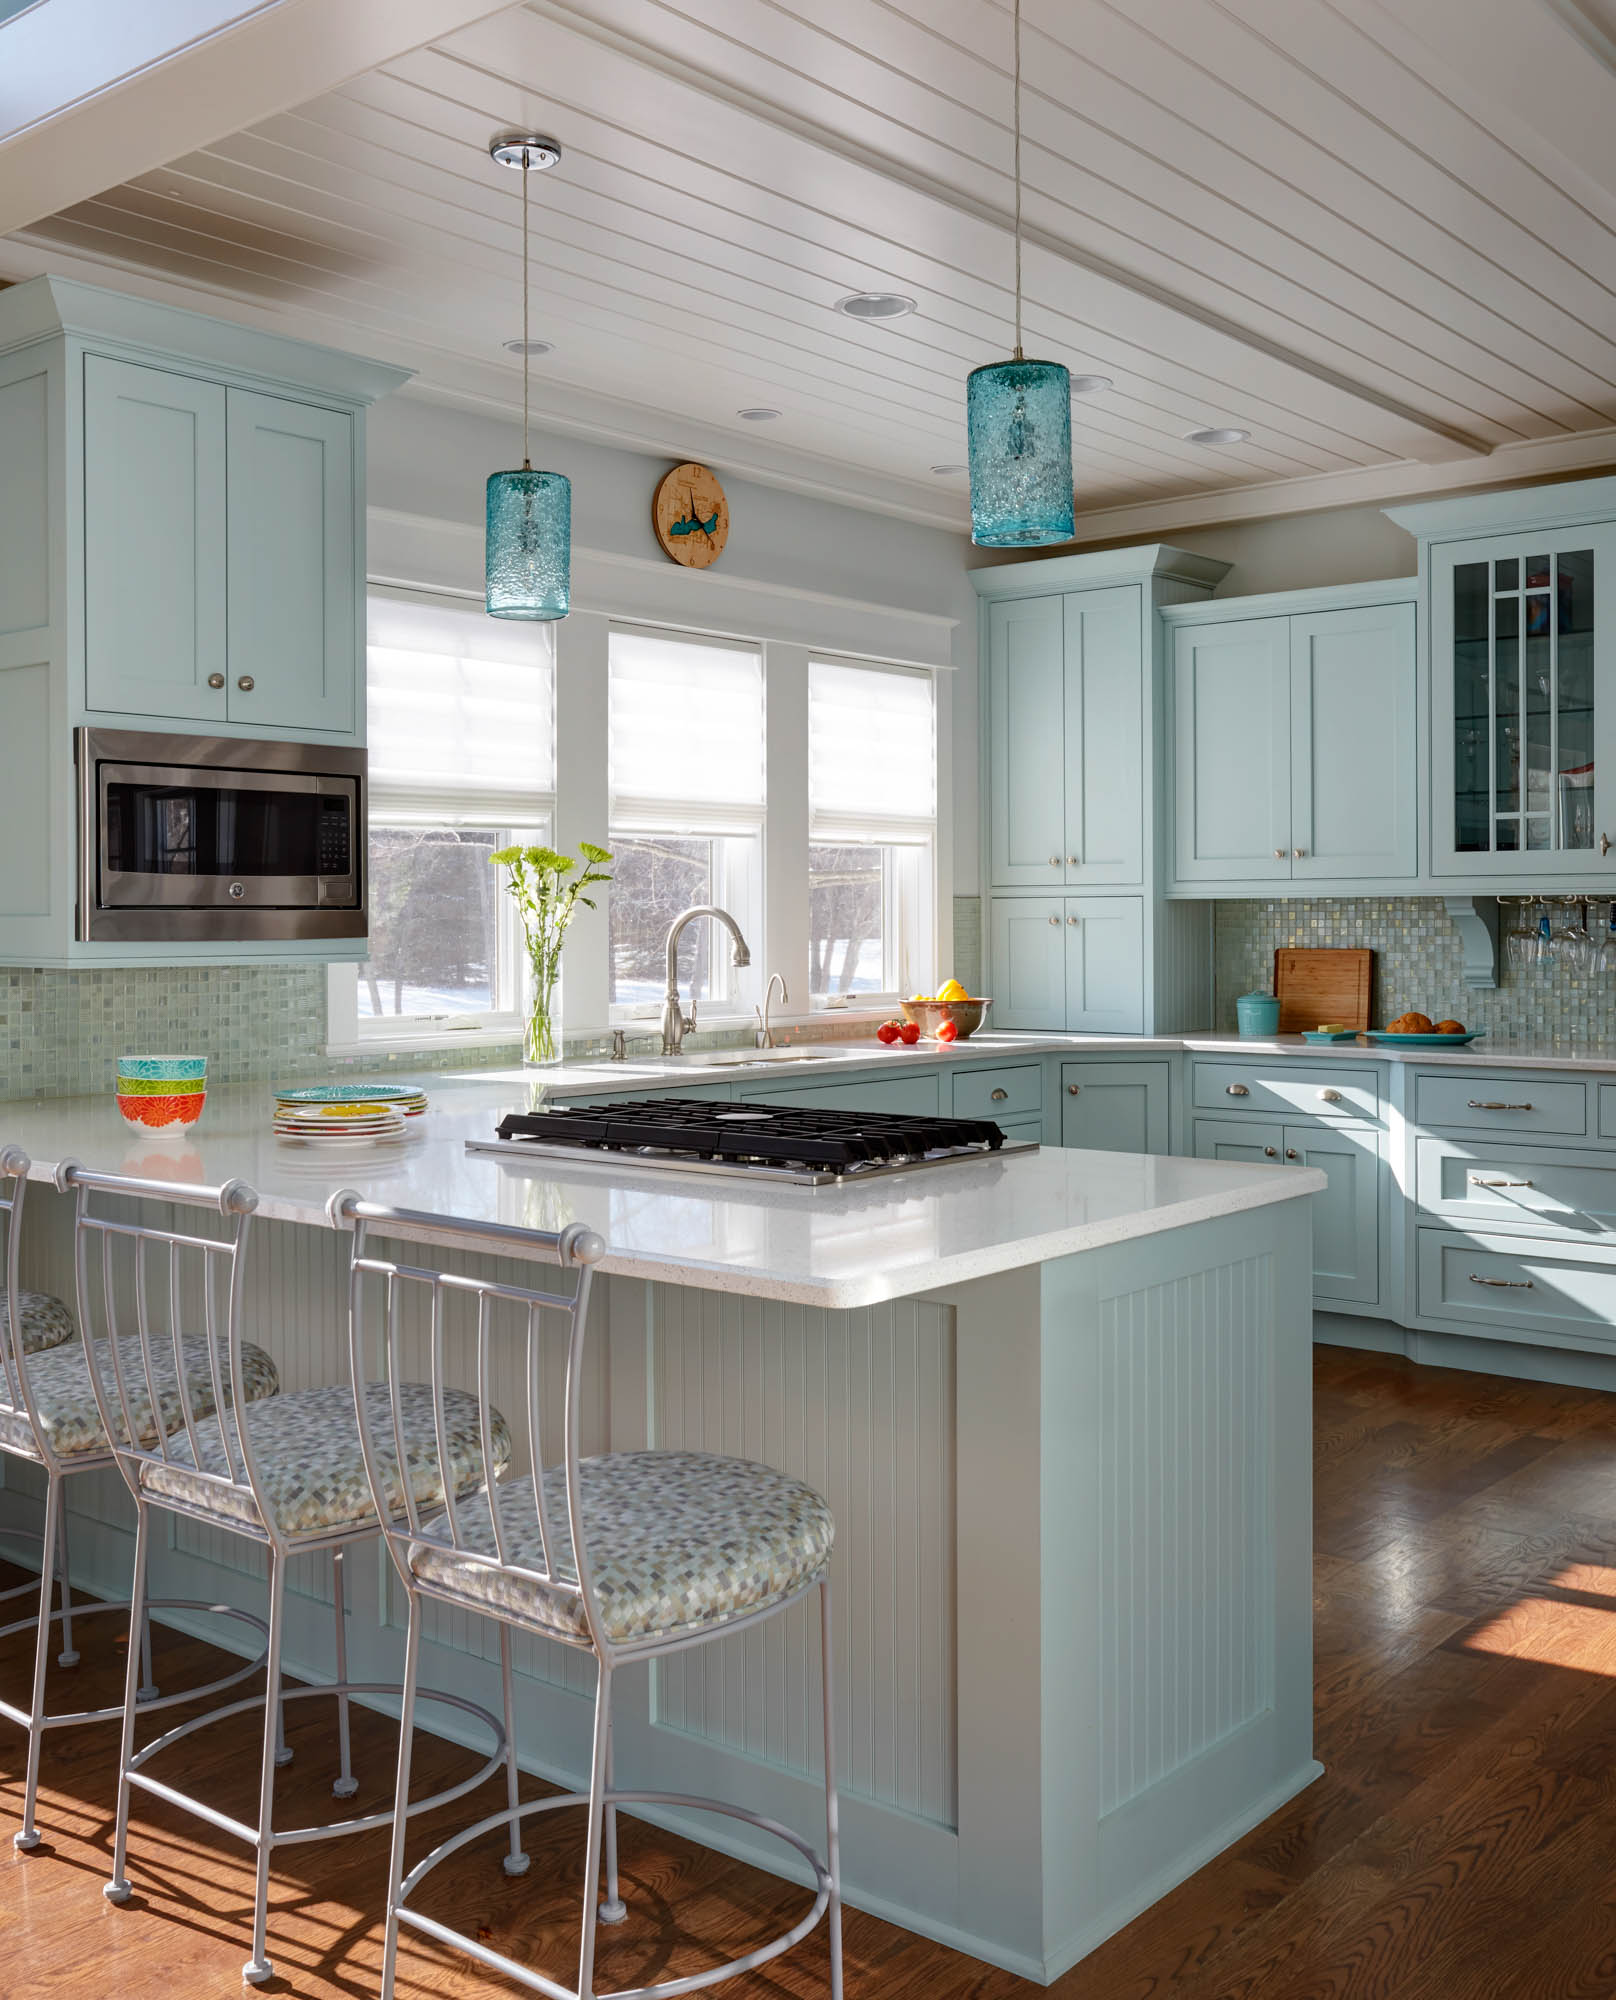 Sherwin-williams Countertop Paint View This Custom Color Painted Kitchen Showplace Cabinetry